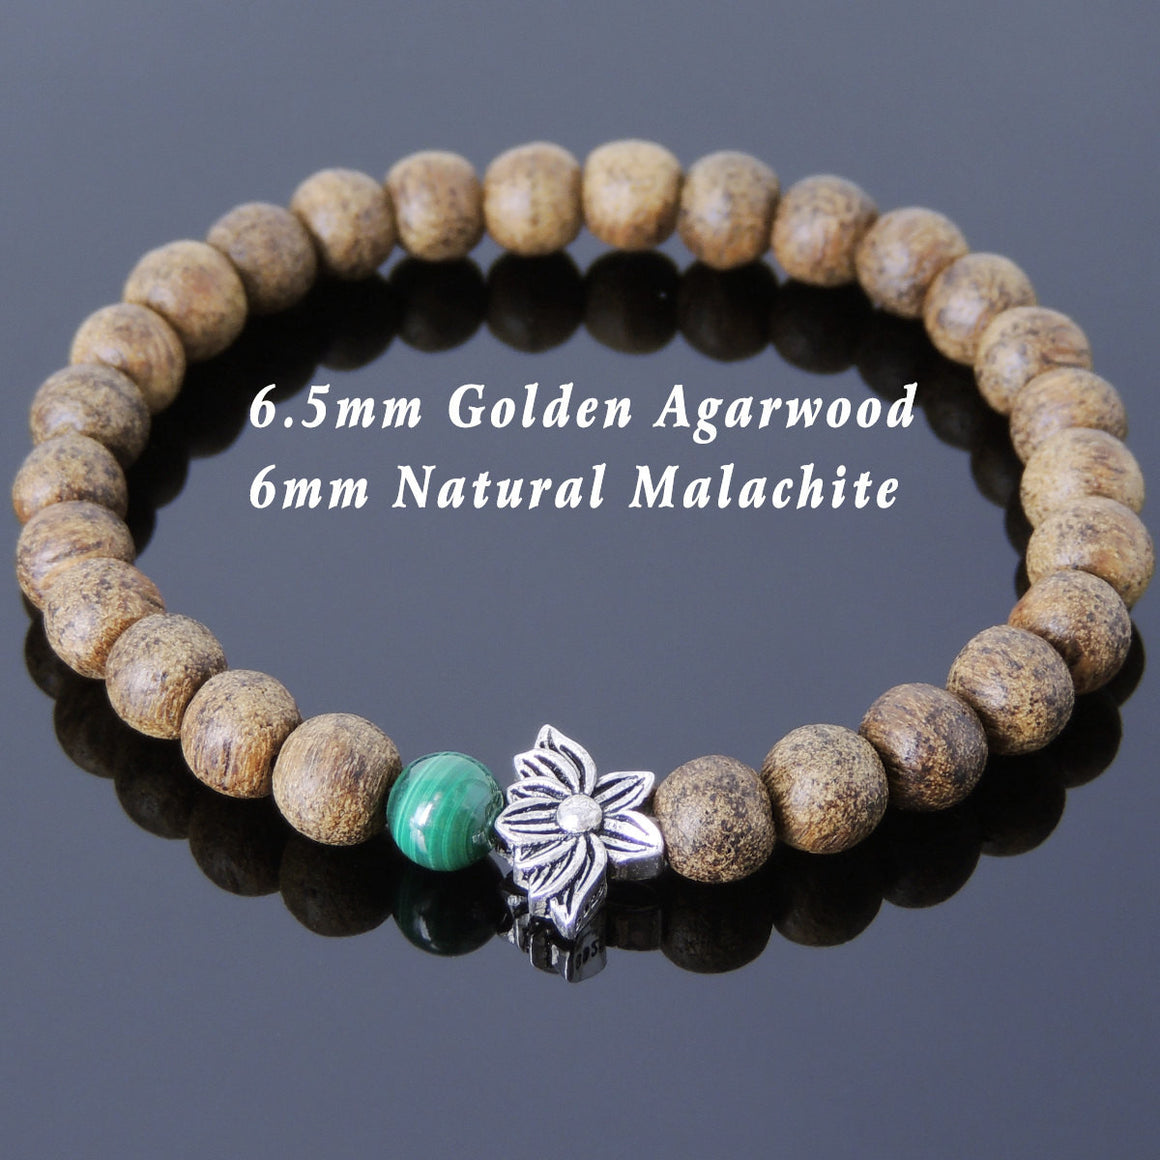 Vietnam Golden Agarwood Bracelet for Prayer & Meditation with S925 Sterling Silver Vintage Double-Sided Lotus Bead - Handmade by Gem & Silver BR715